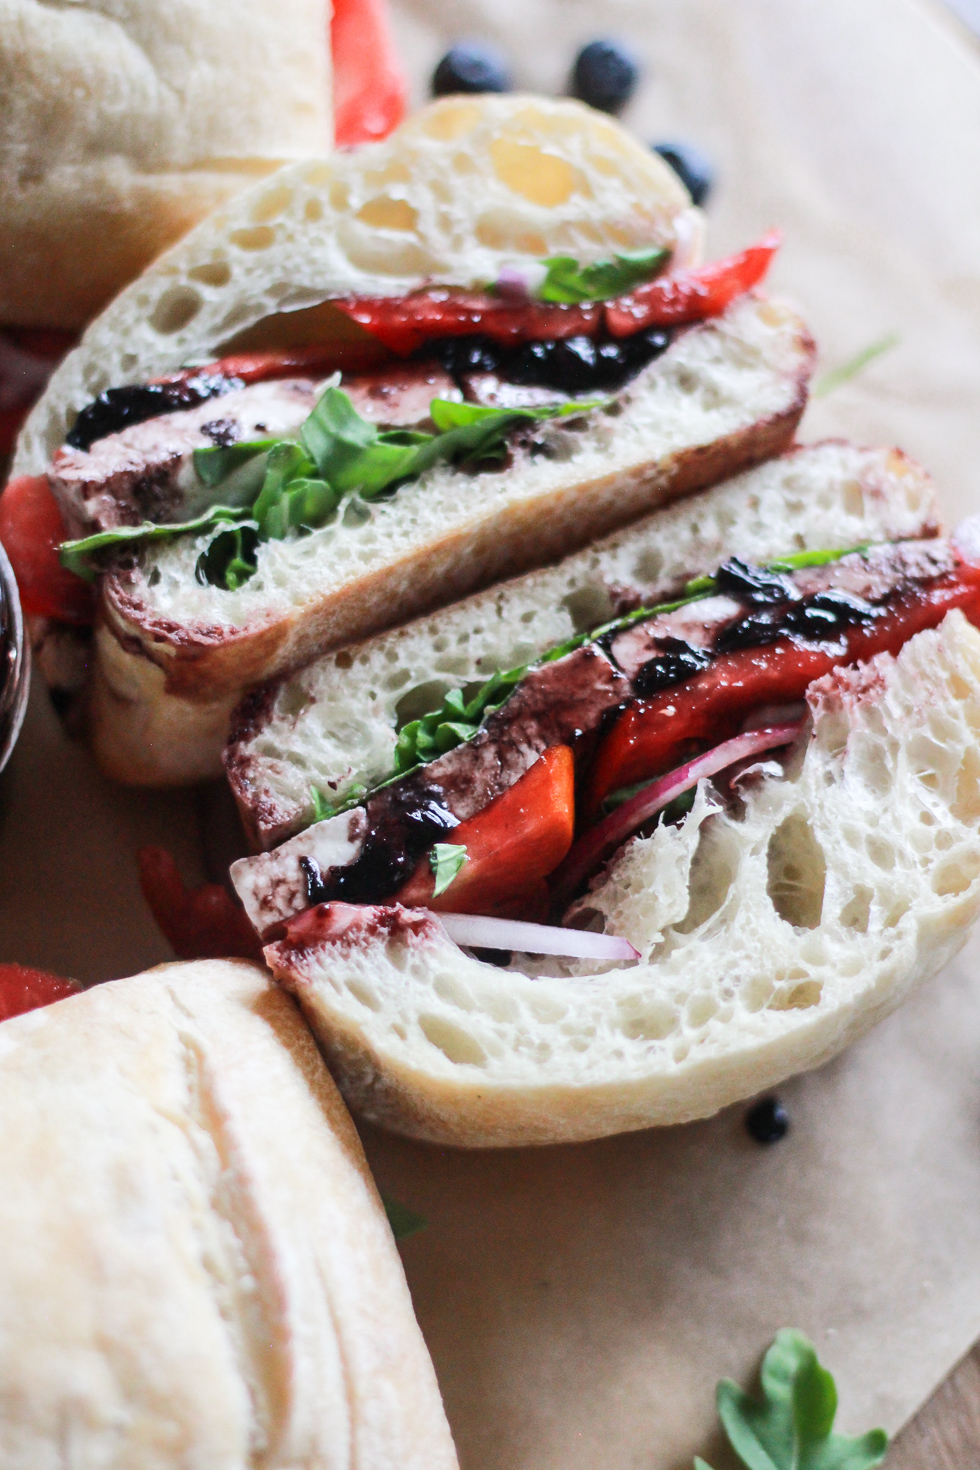 Halved Tomato Mozzarella Sandwich with arugula and blueberry balsamic sauce.